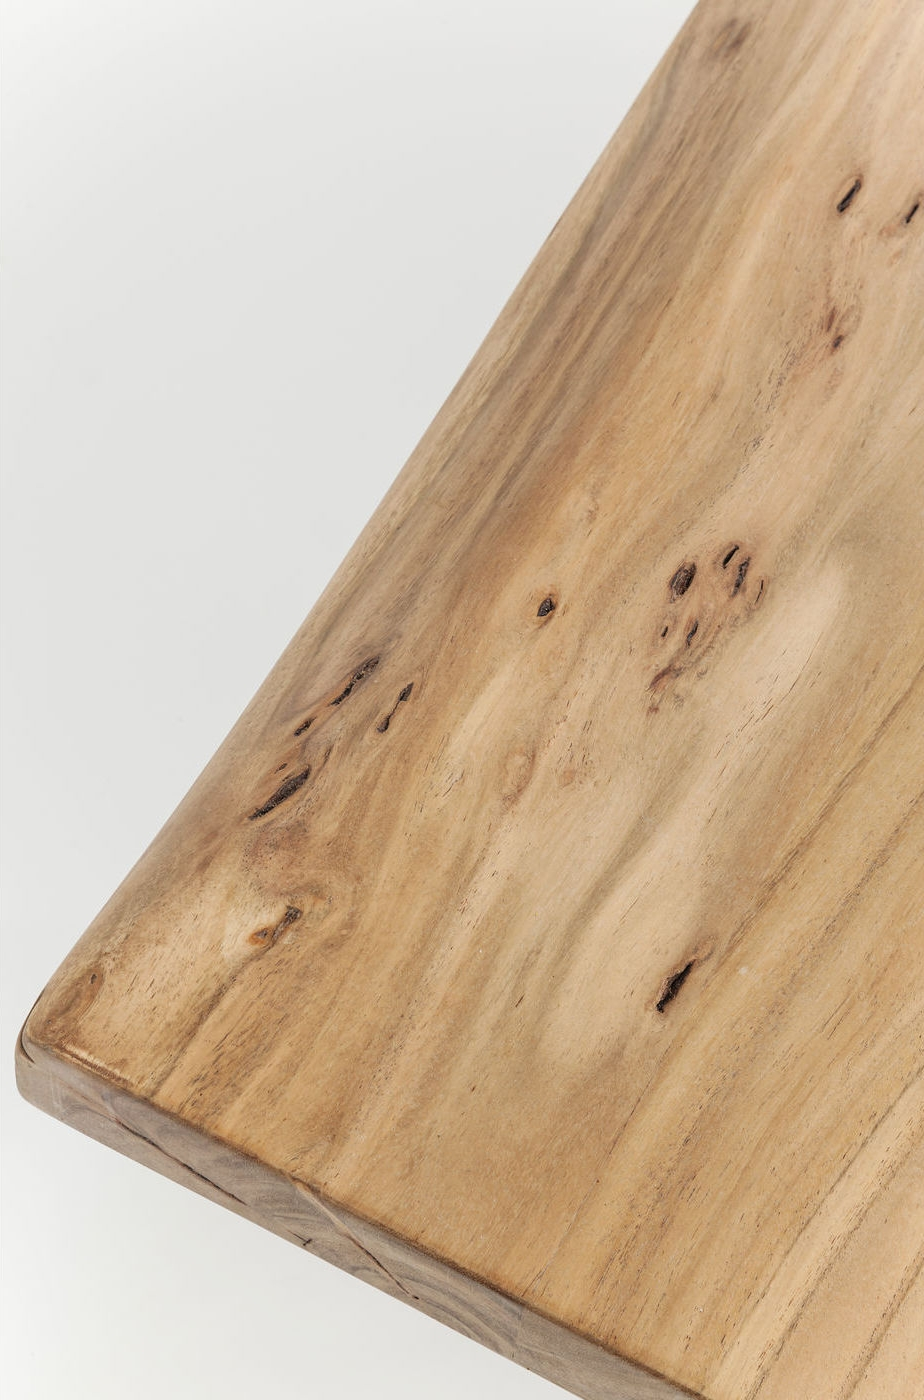 Kare Design SALE - Eettafelbank Pure Nature - L140 X H45 Cm - Metaal - Acacia Hout